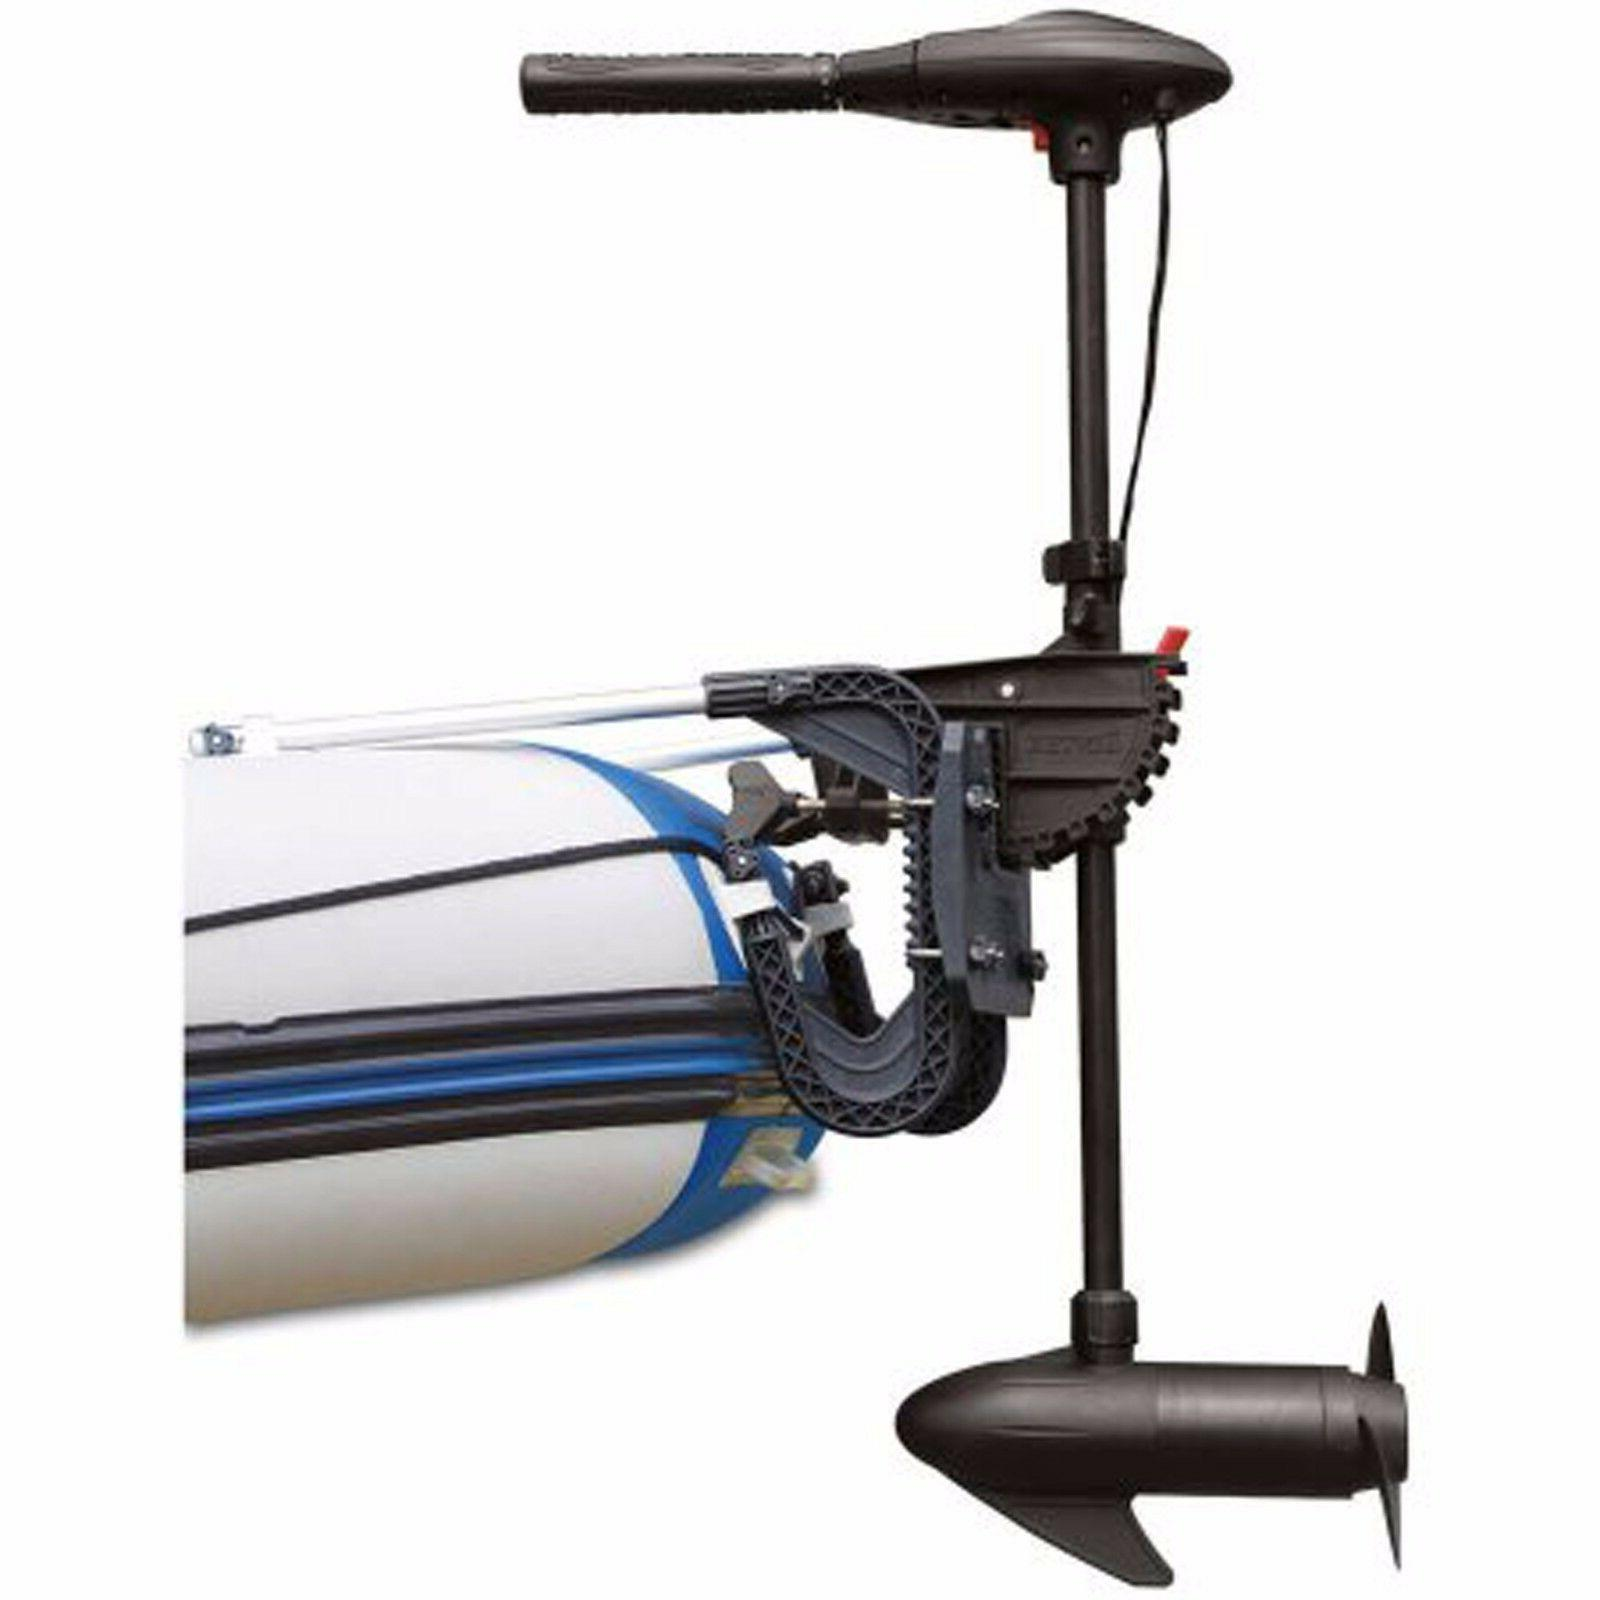 Trolling Motor For Intex Inflatable Boat 36 Shaft Adjustable